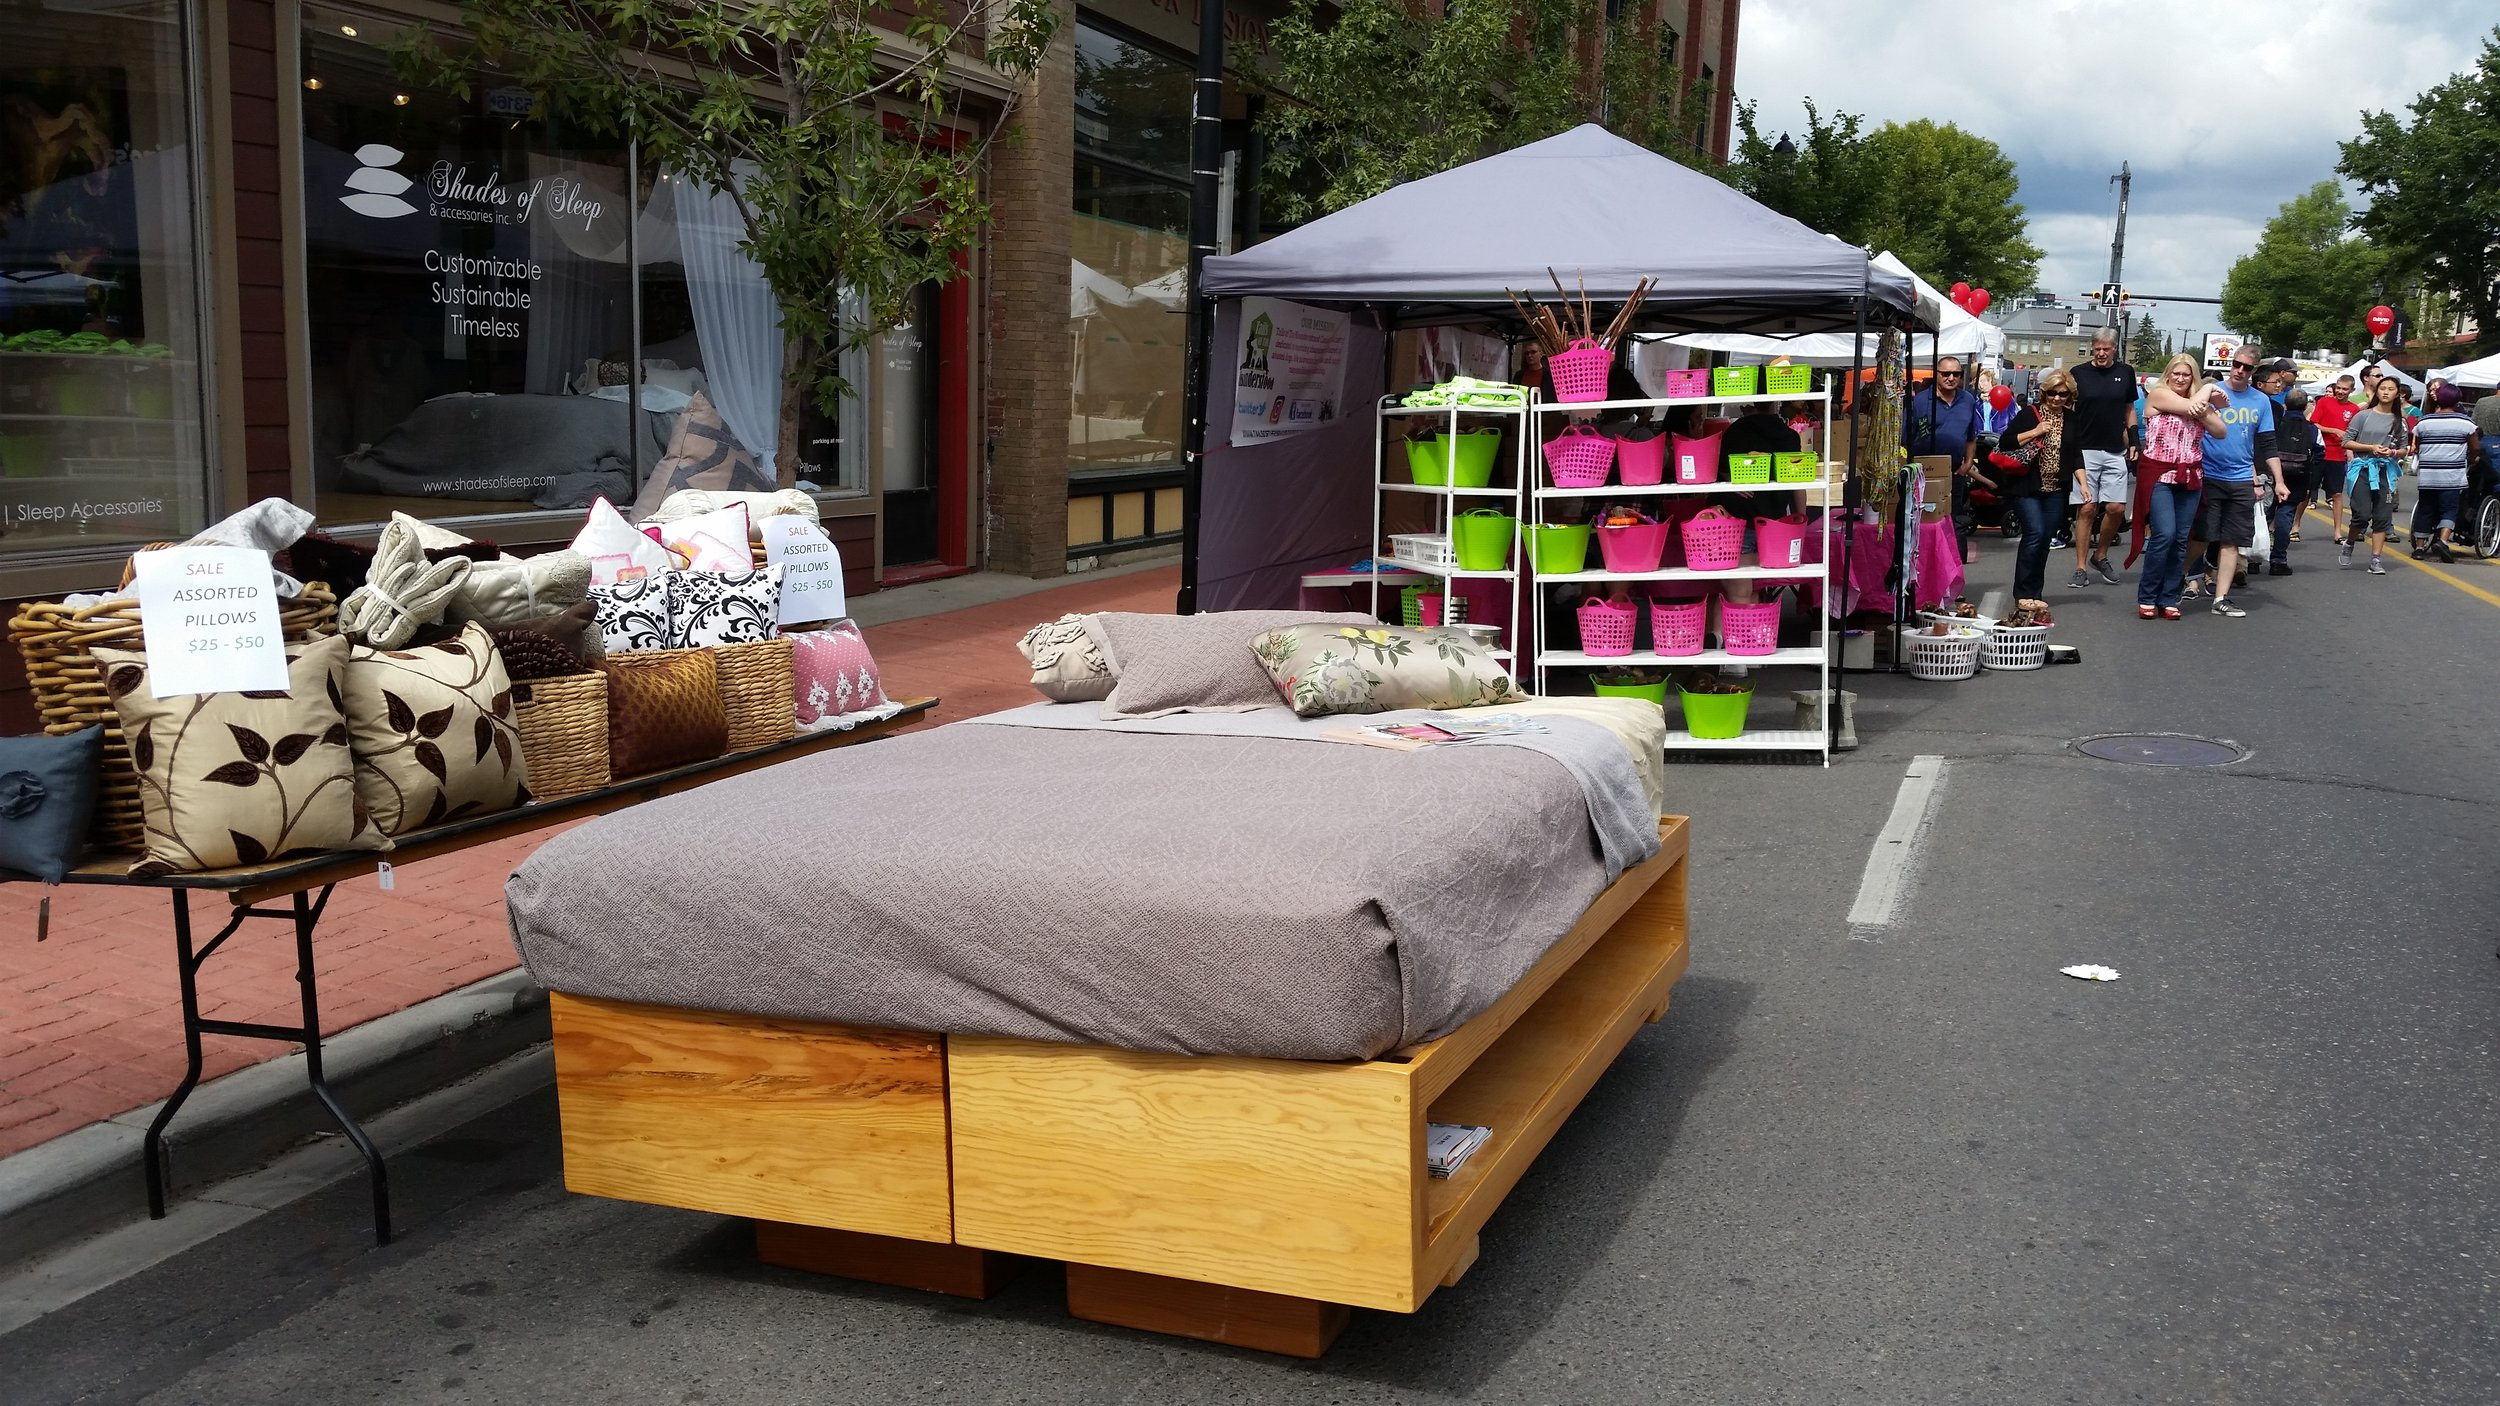 Inglewood Sunfest Shades of Sleep bed / open concept box spring